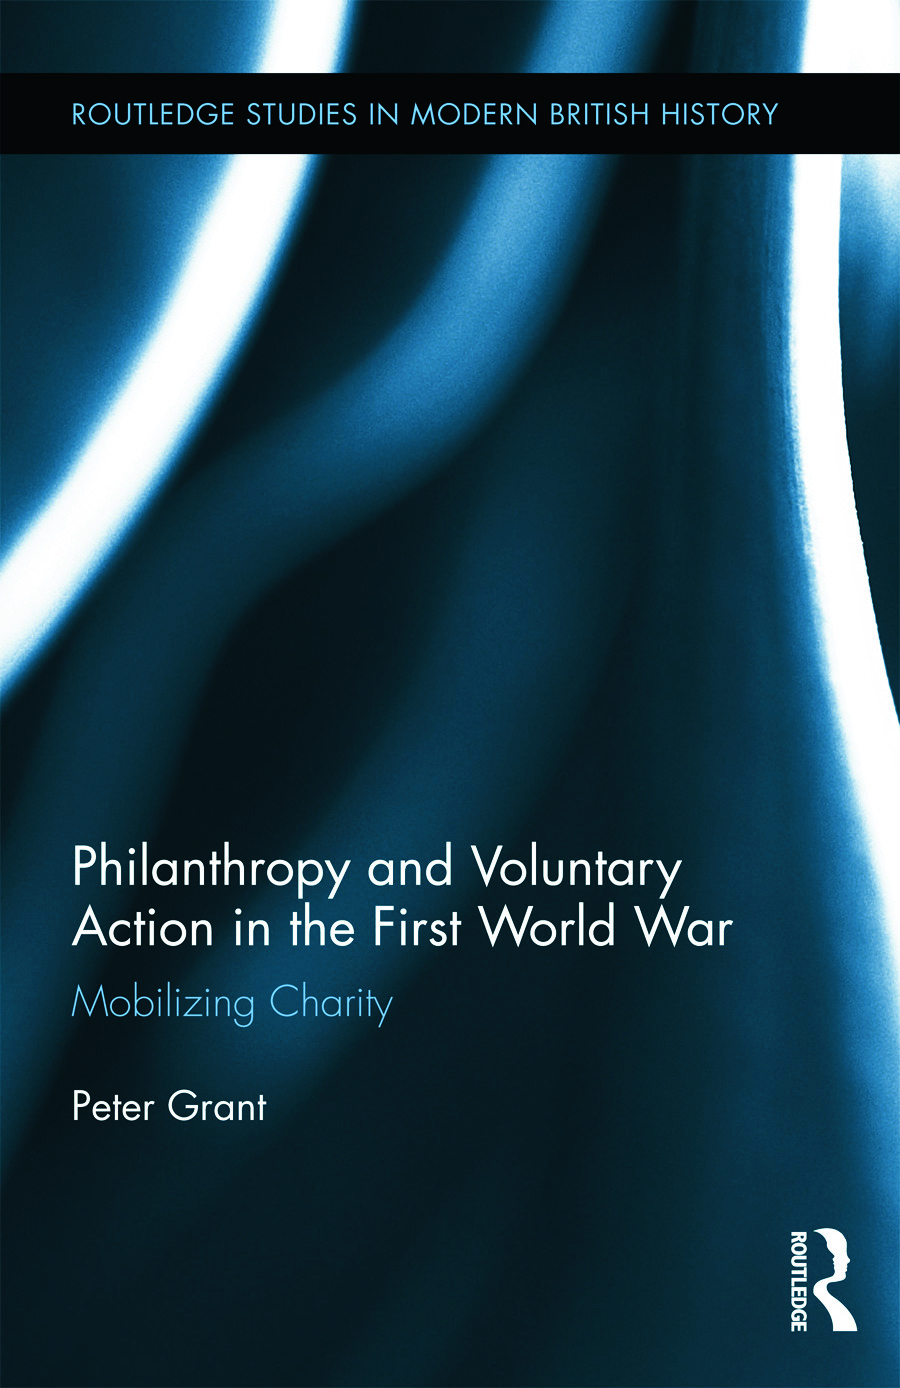 Philanthropy and Voluntary Action in the First World War: Mobilizing Charity book cover